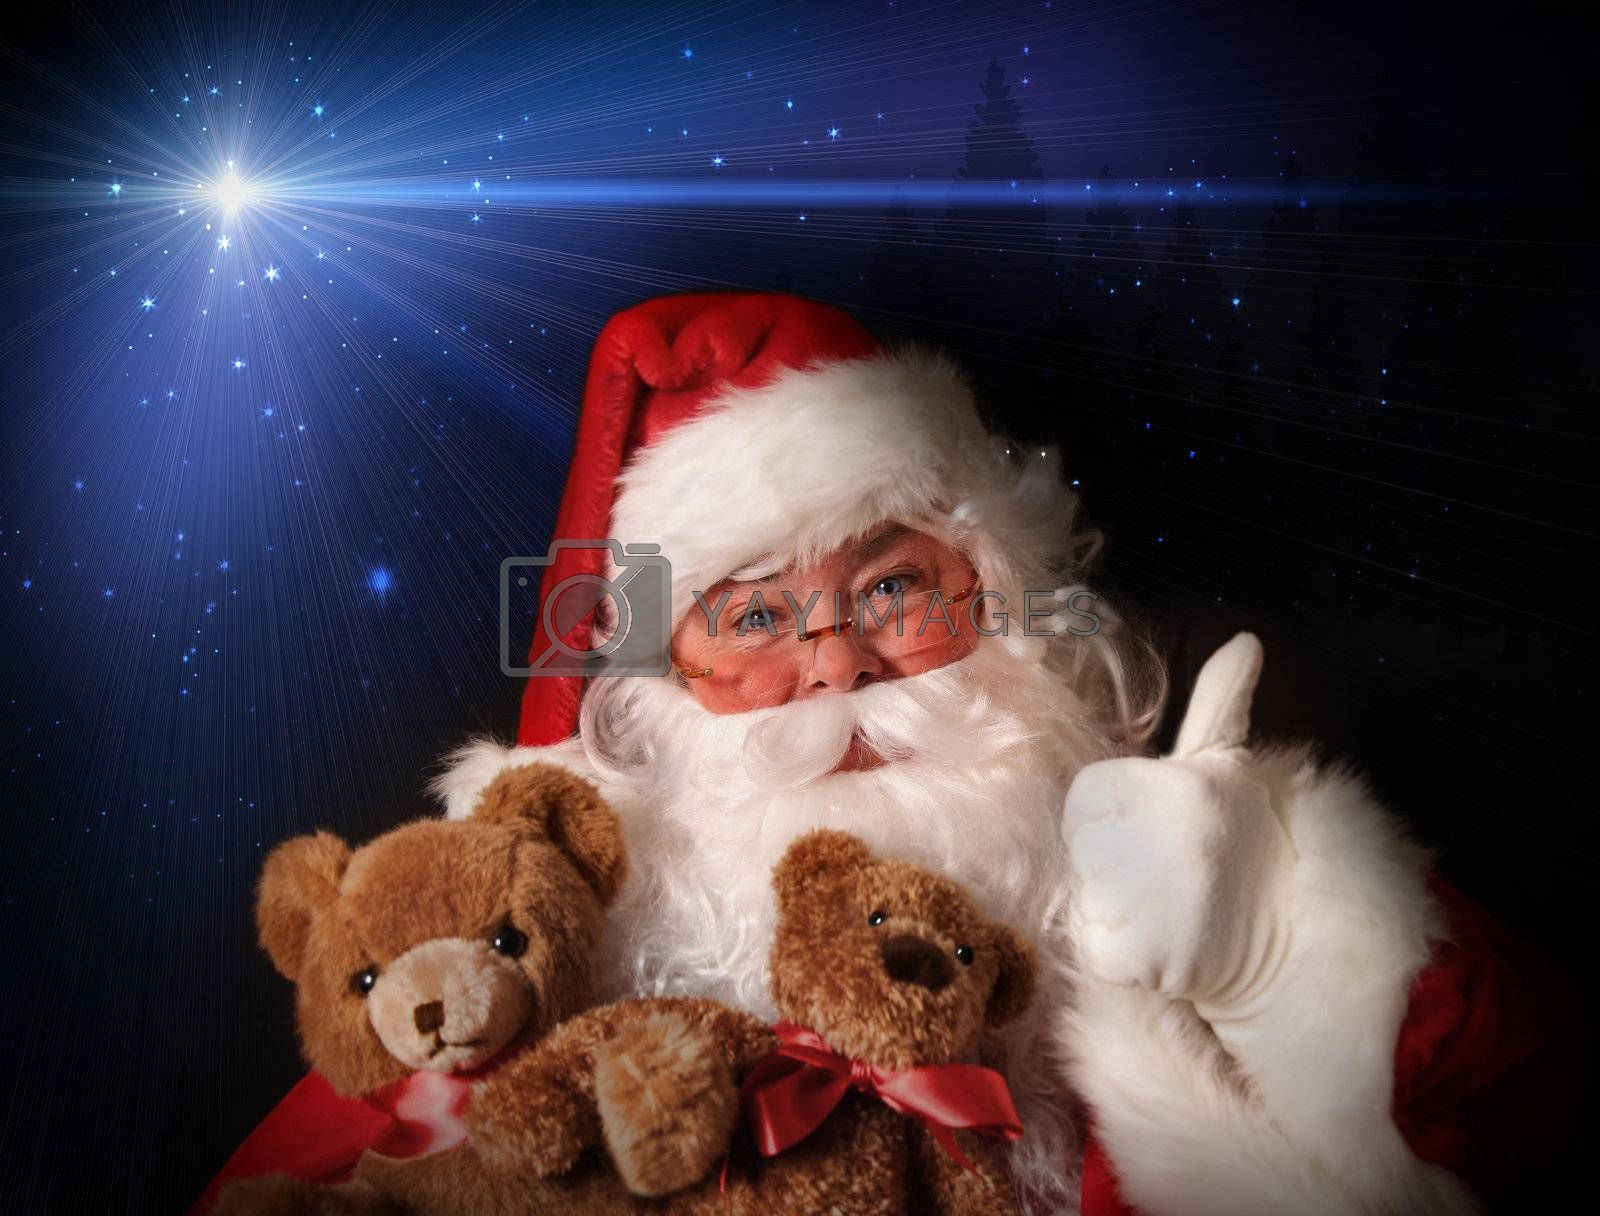 Santa smiling holding toy teddy bears in his arms aginst a night sky